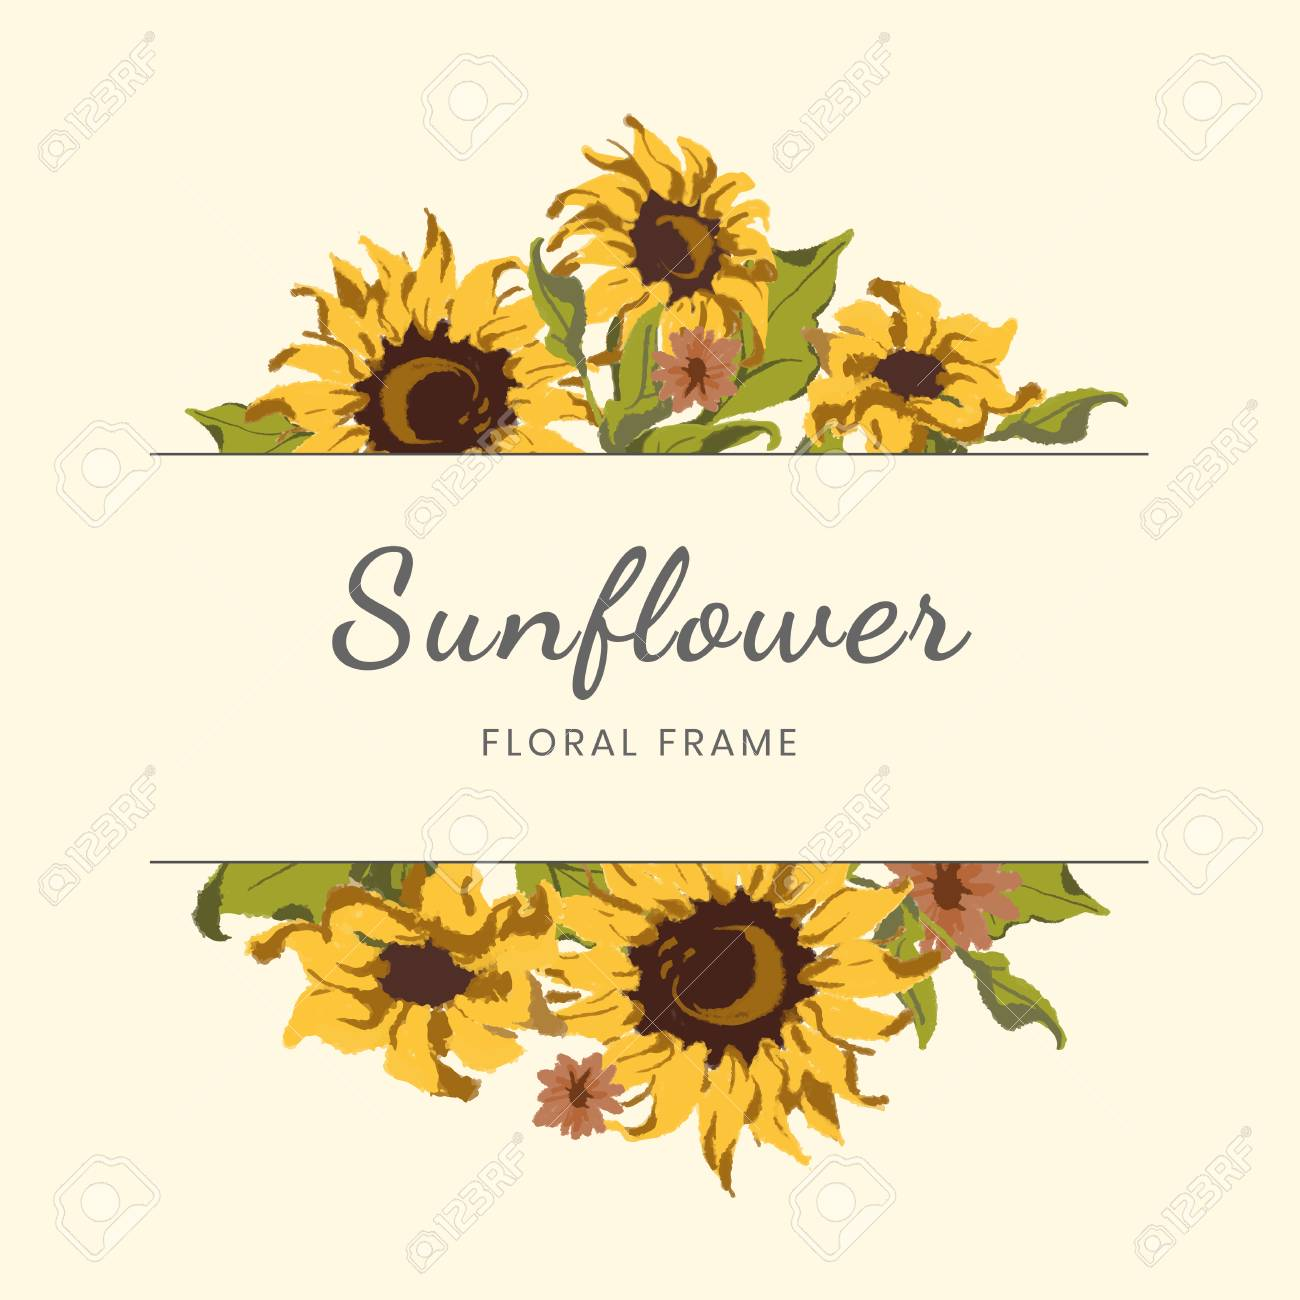 Round Sunflower Wreath Frame Vector Royalty Free Cliparts Vectors And Stock Illustration Image 117605096